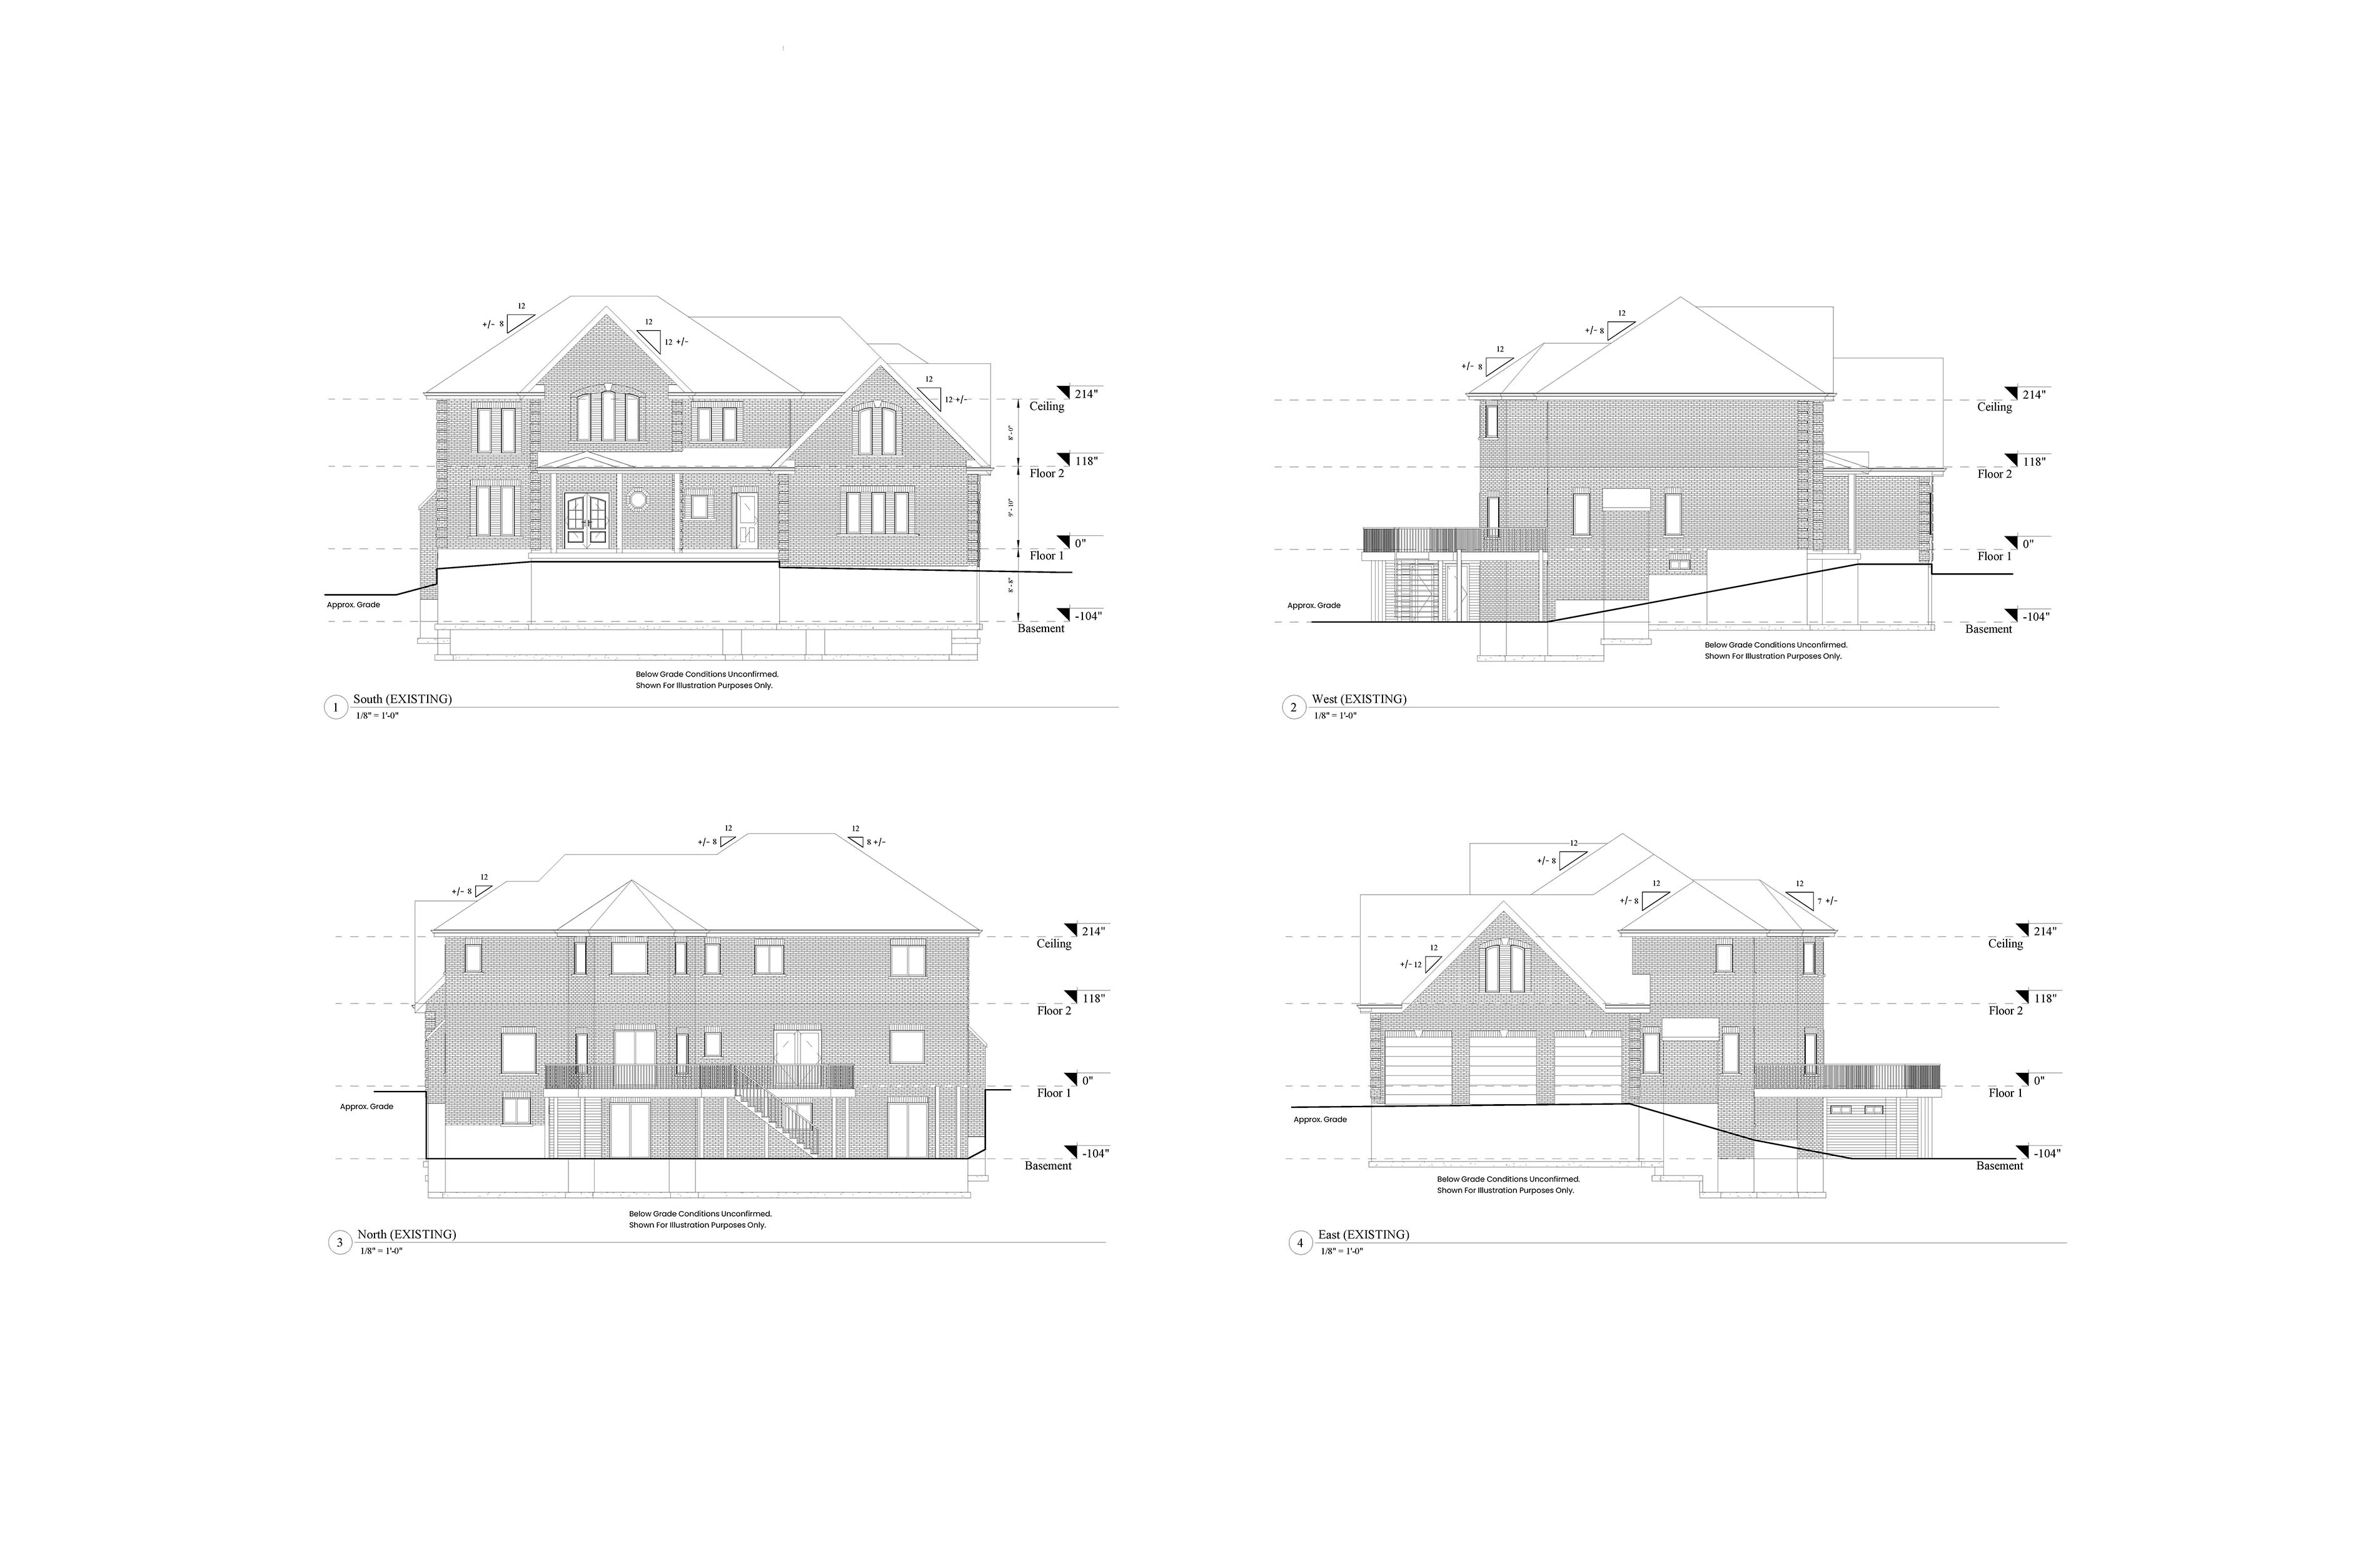 AutoCad 2D elevation drawings of the south, north, east, and west view of the house.